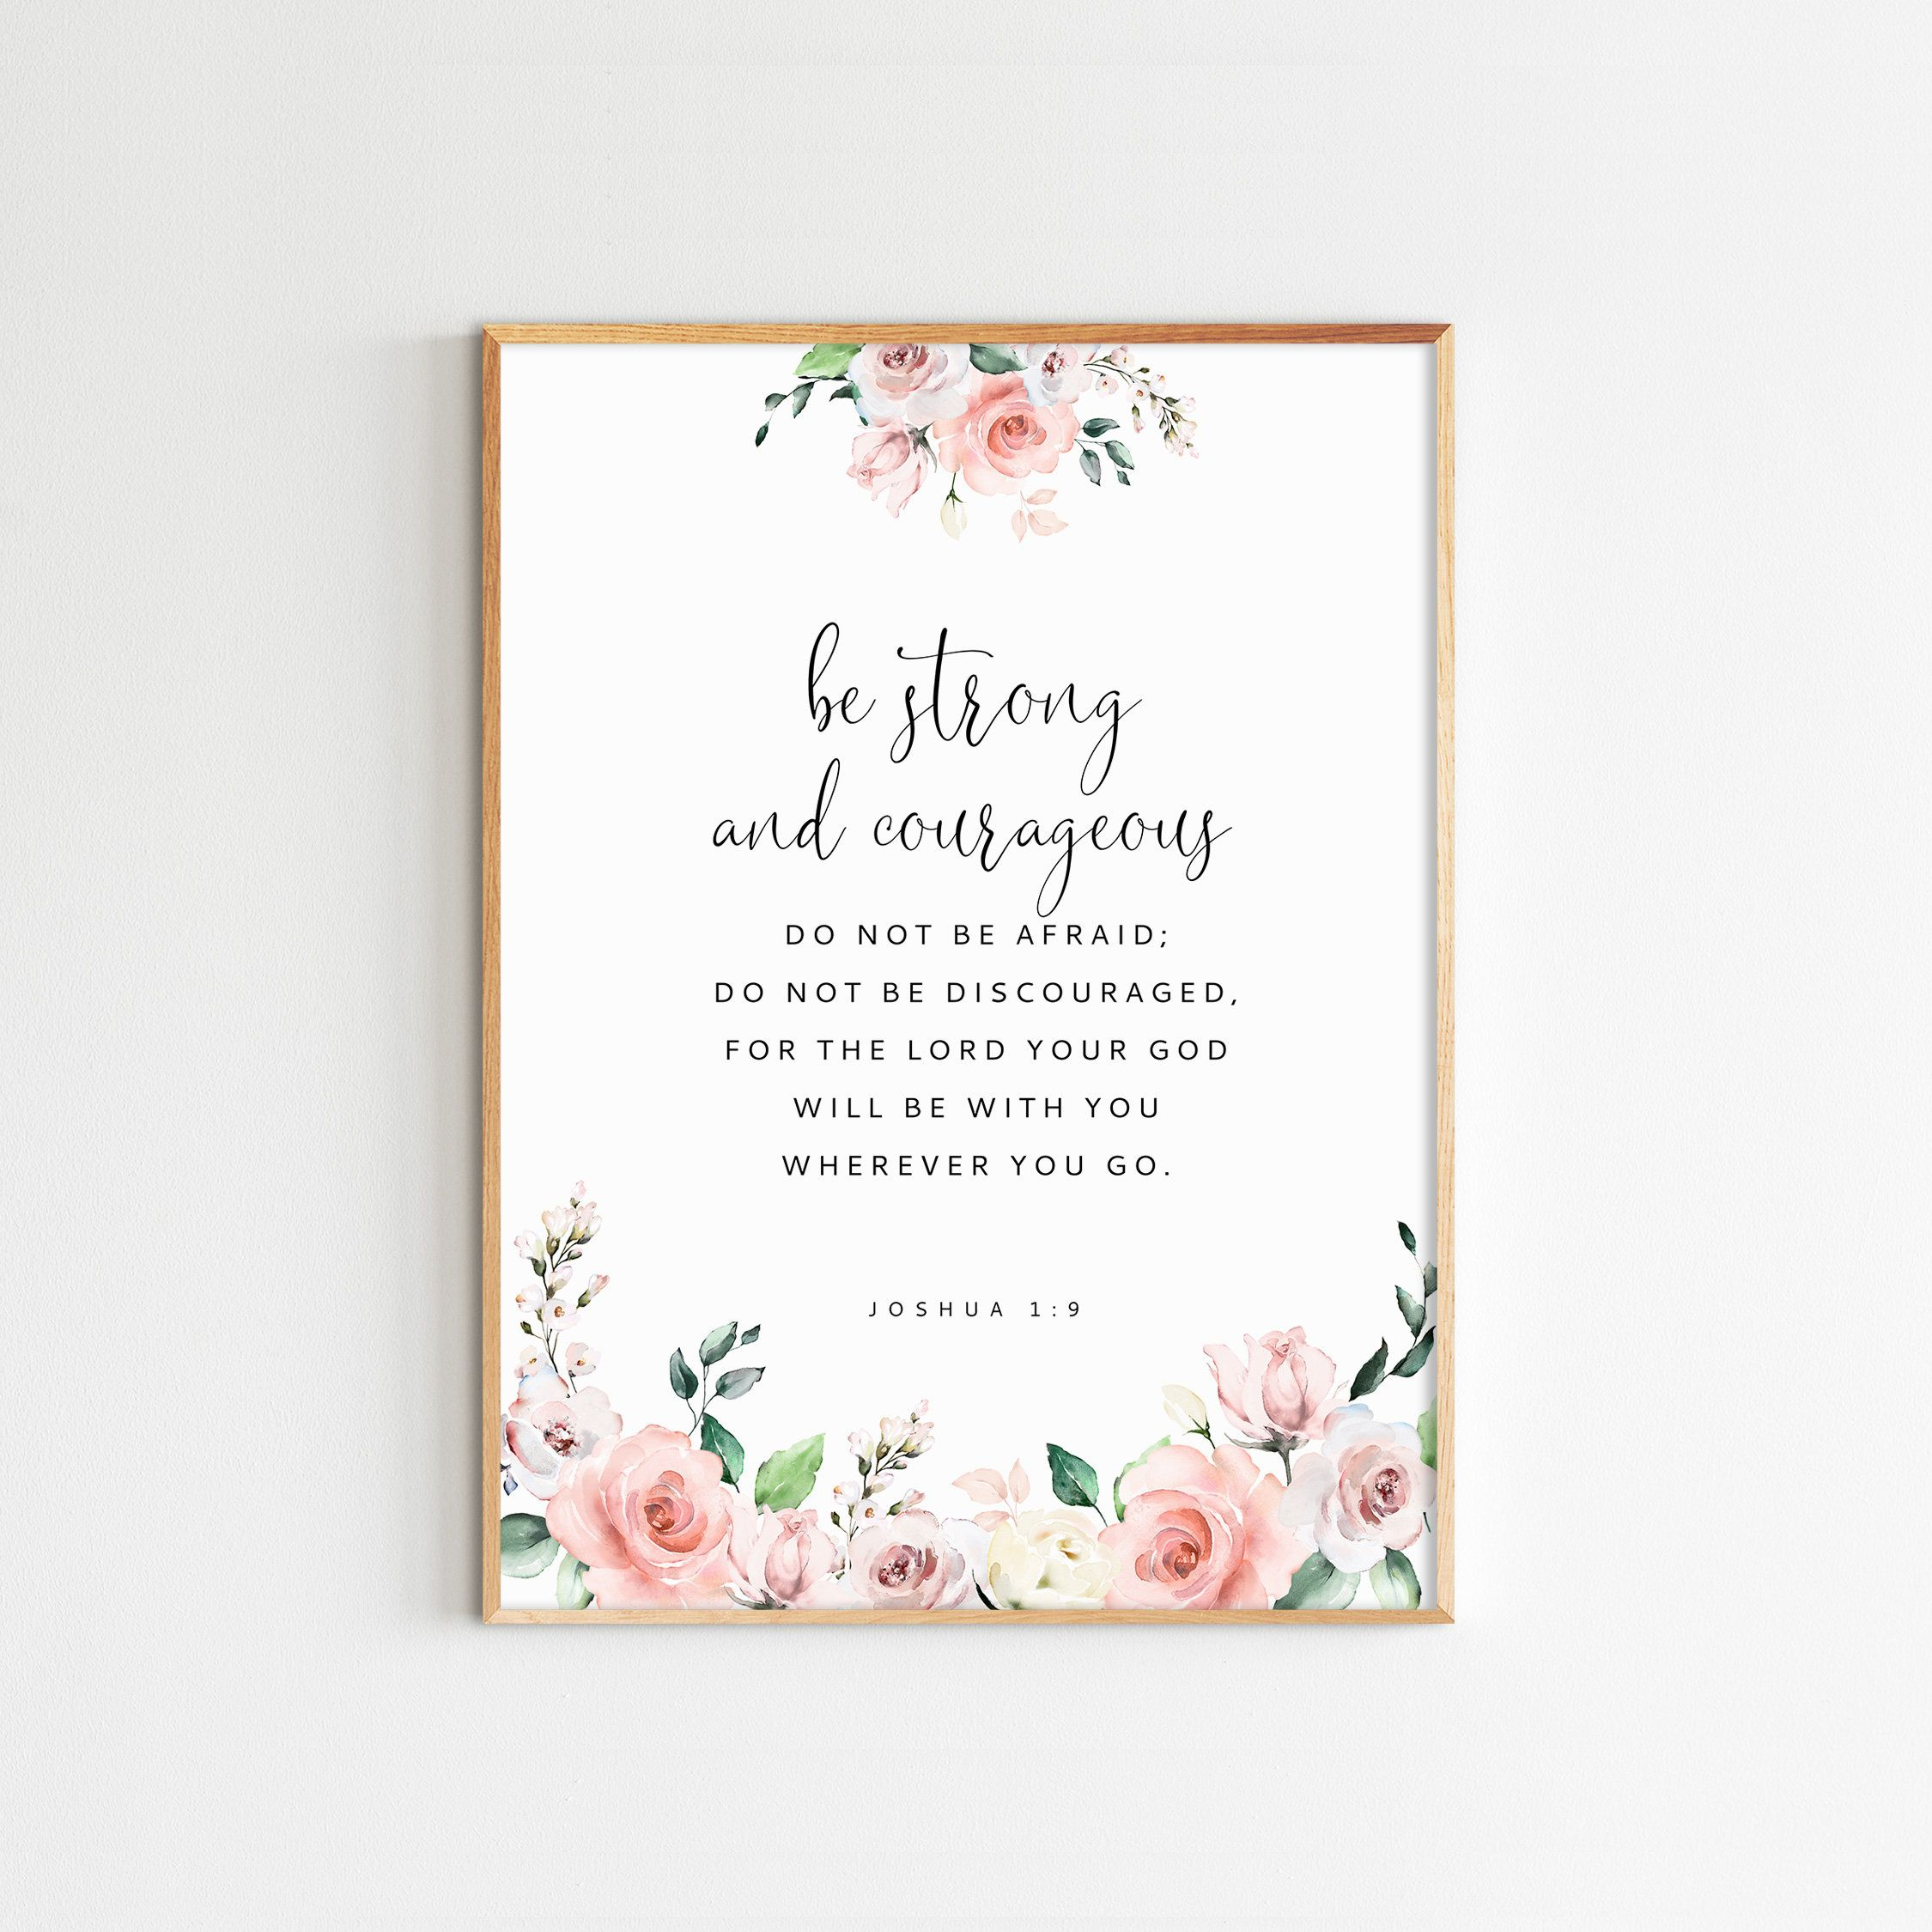 Joshua 1 9 Be Strong And Courageous Bible Verse Wall Art Christian Decor Watercolor Painting Floral Bible Verse Wall Art Holiday Wall Art Christian Wall Art